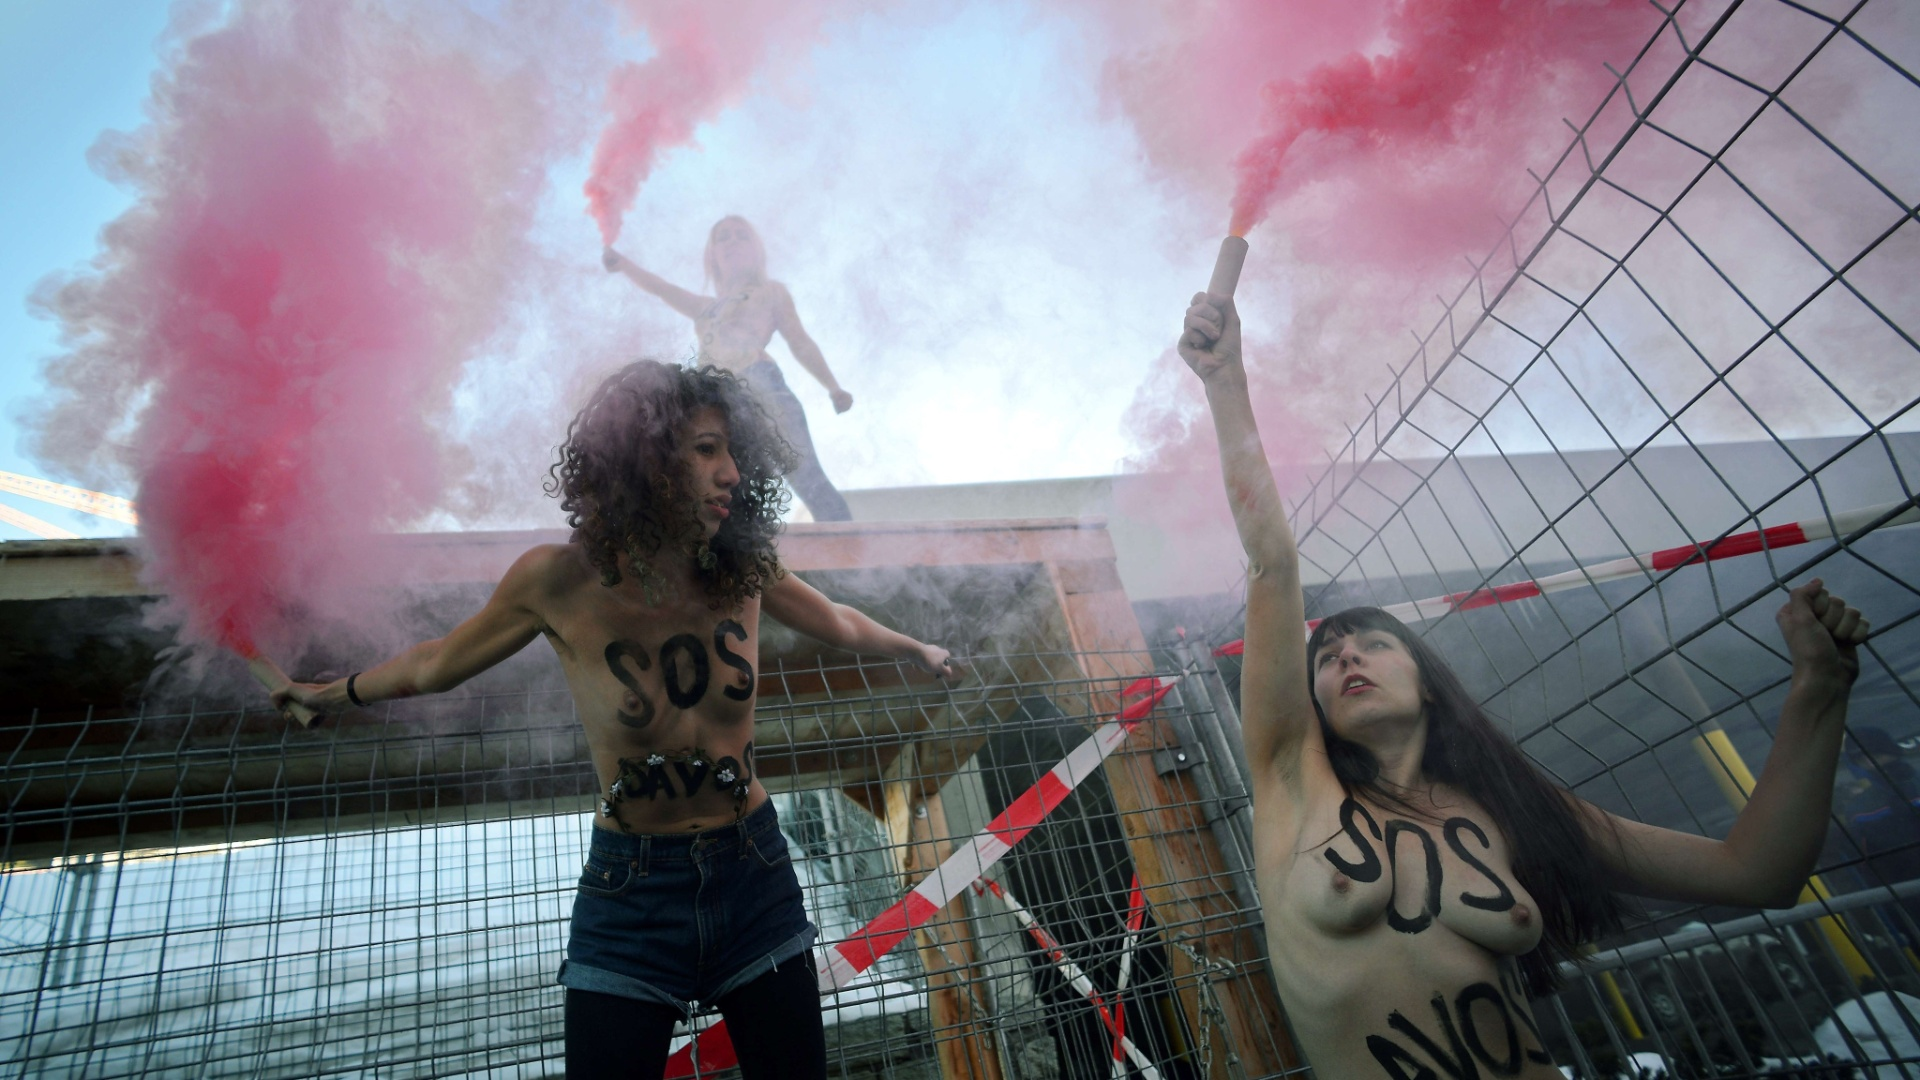 26.jan.2013 - Ativistas do Femen protestam em Davos, na Sua